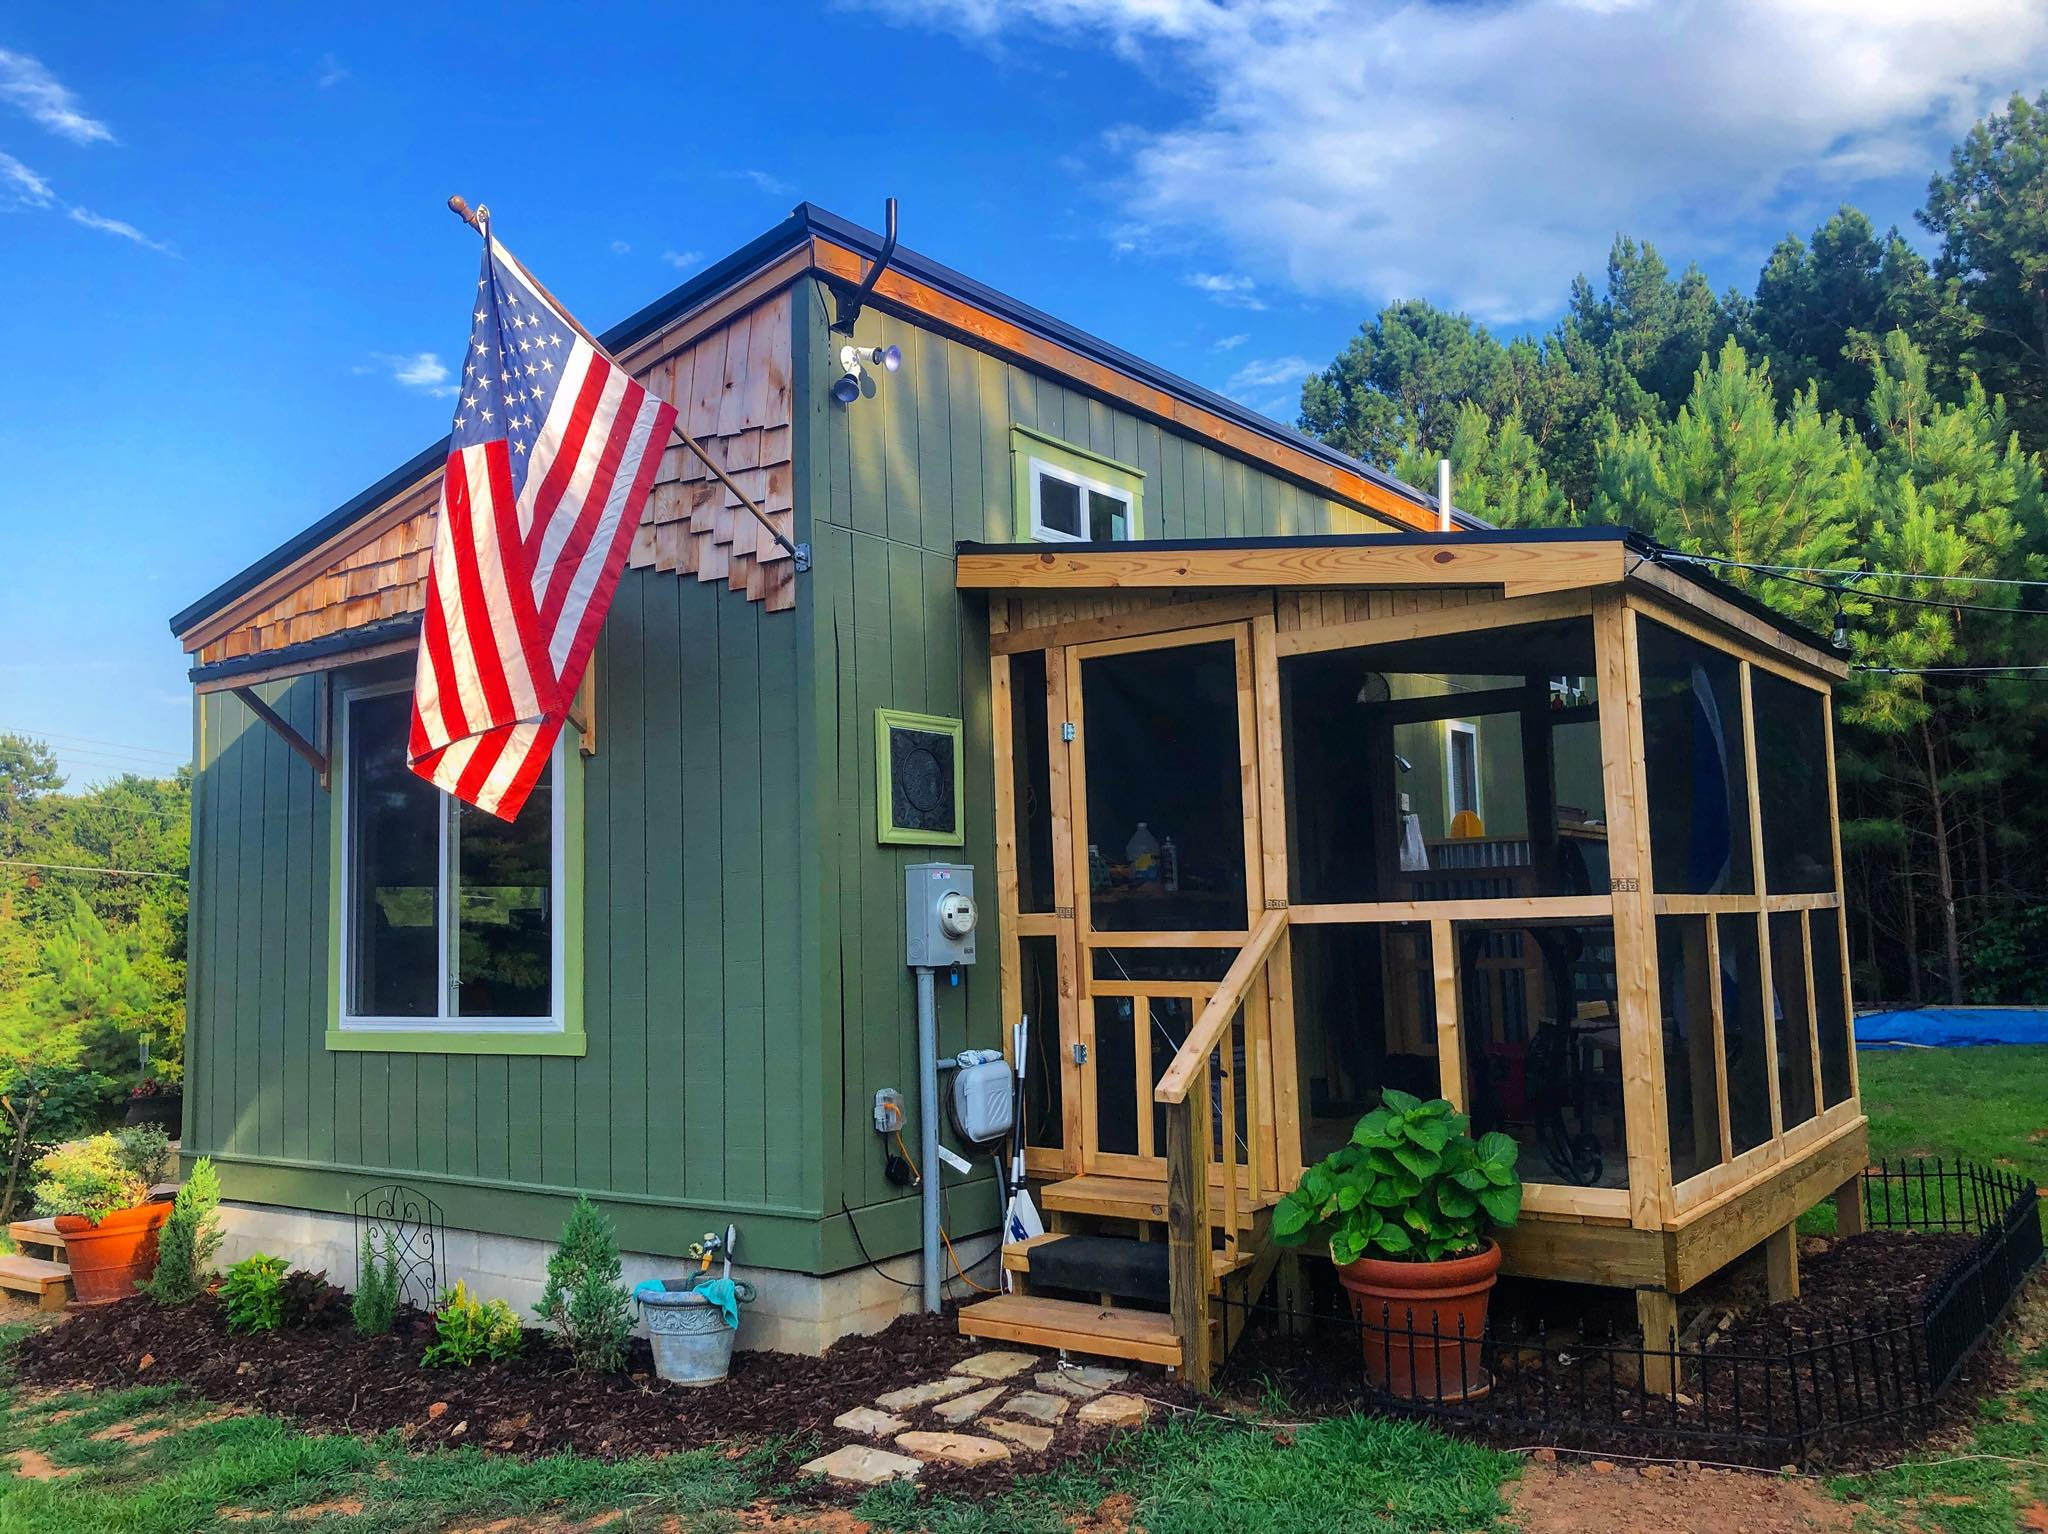 Do It Yourself Home Design: Tiny Cottage On Foundation With Screened-in Porch, Outdoor